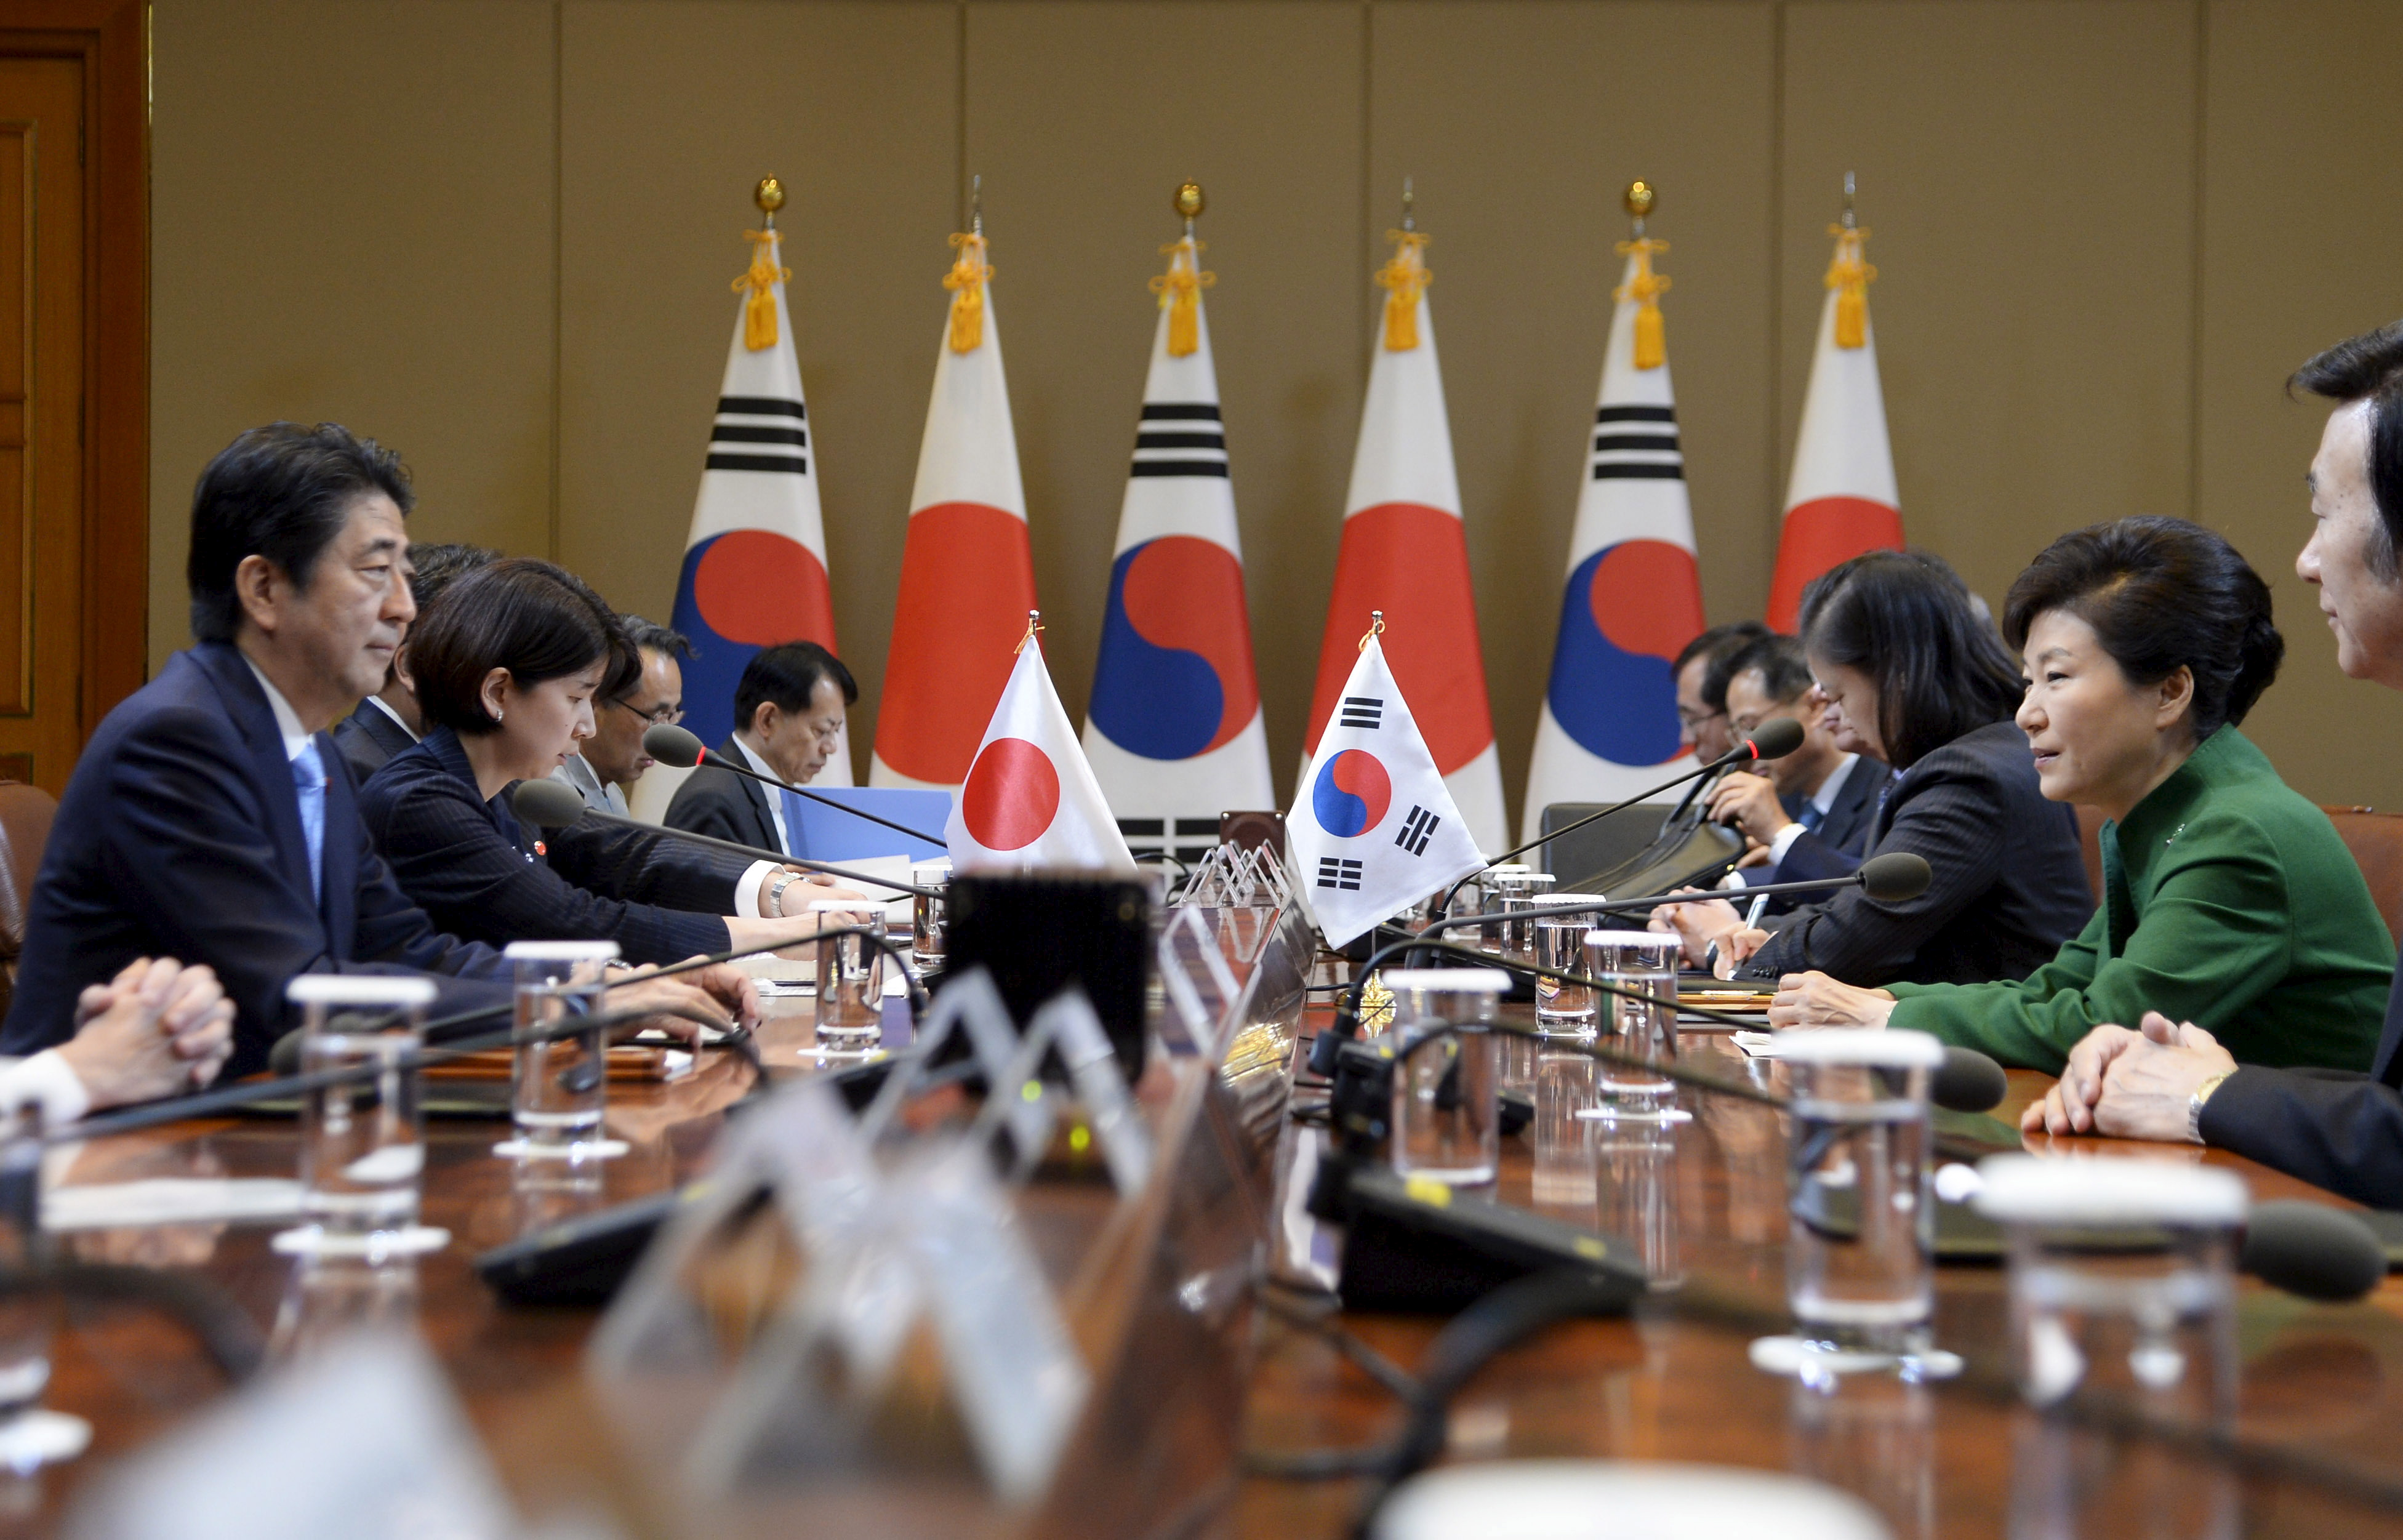 Japanese Prime Minister Shinzo Abe (L) talks with South Korean President Park Geun-Hye (R) during their meeting at the presidential house in Seoul, South Korea,  November 2, 2015.